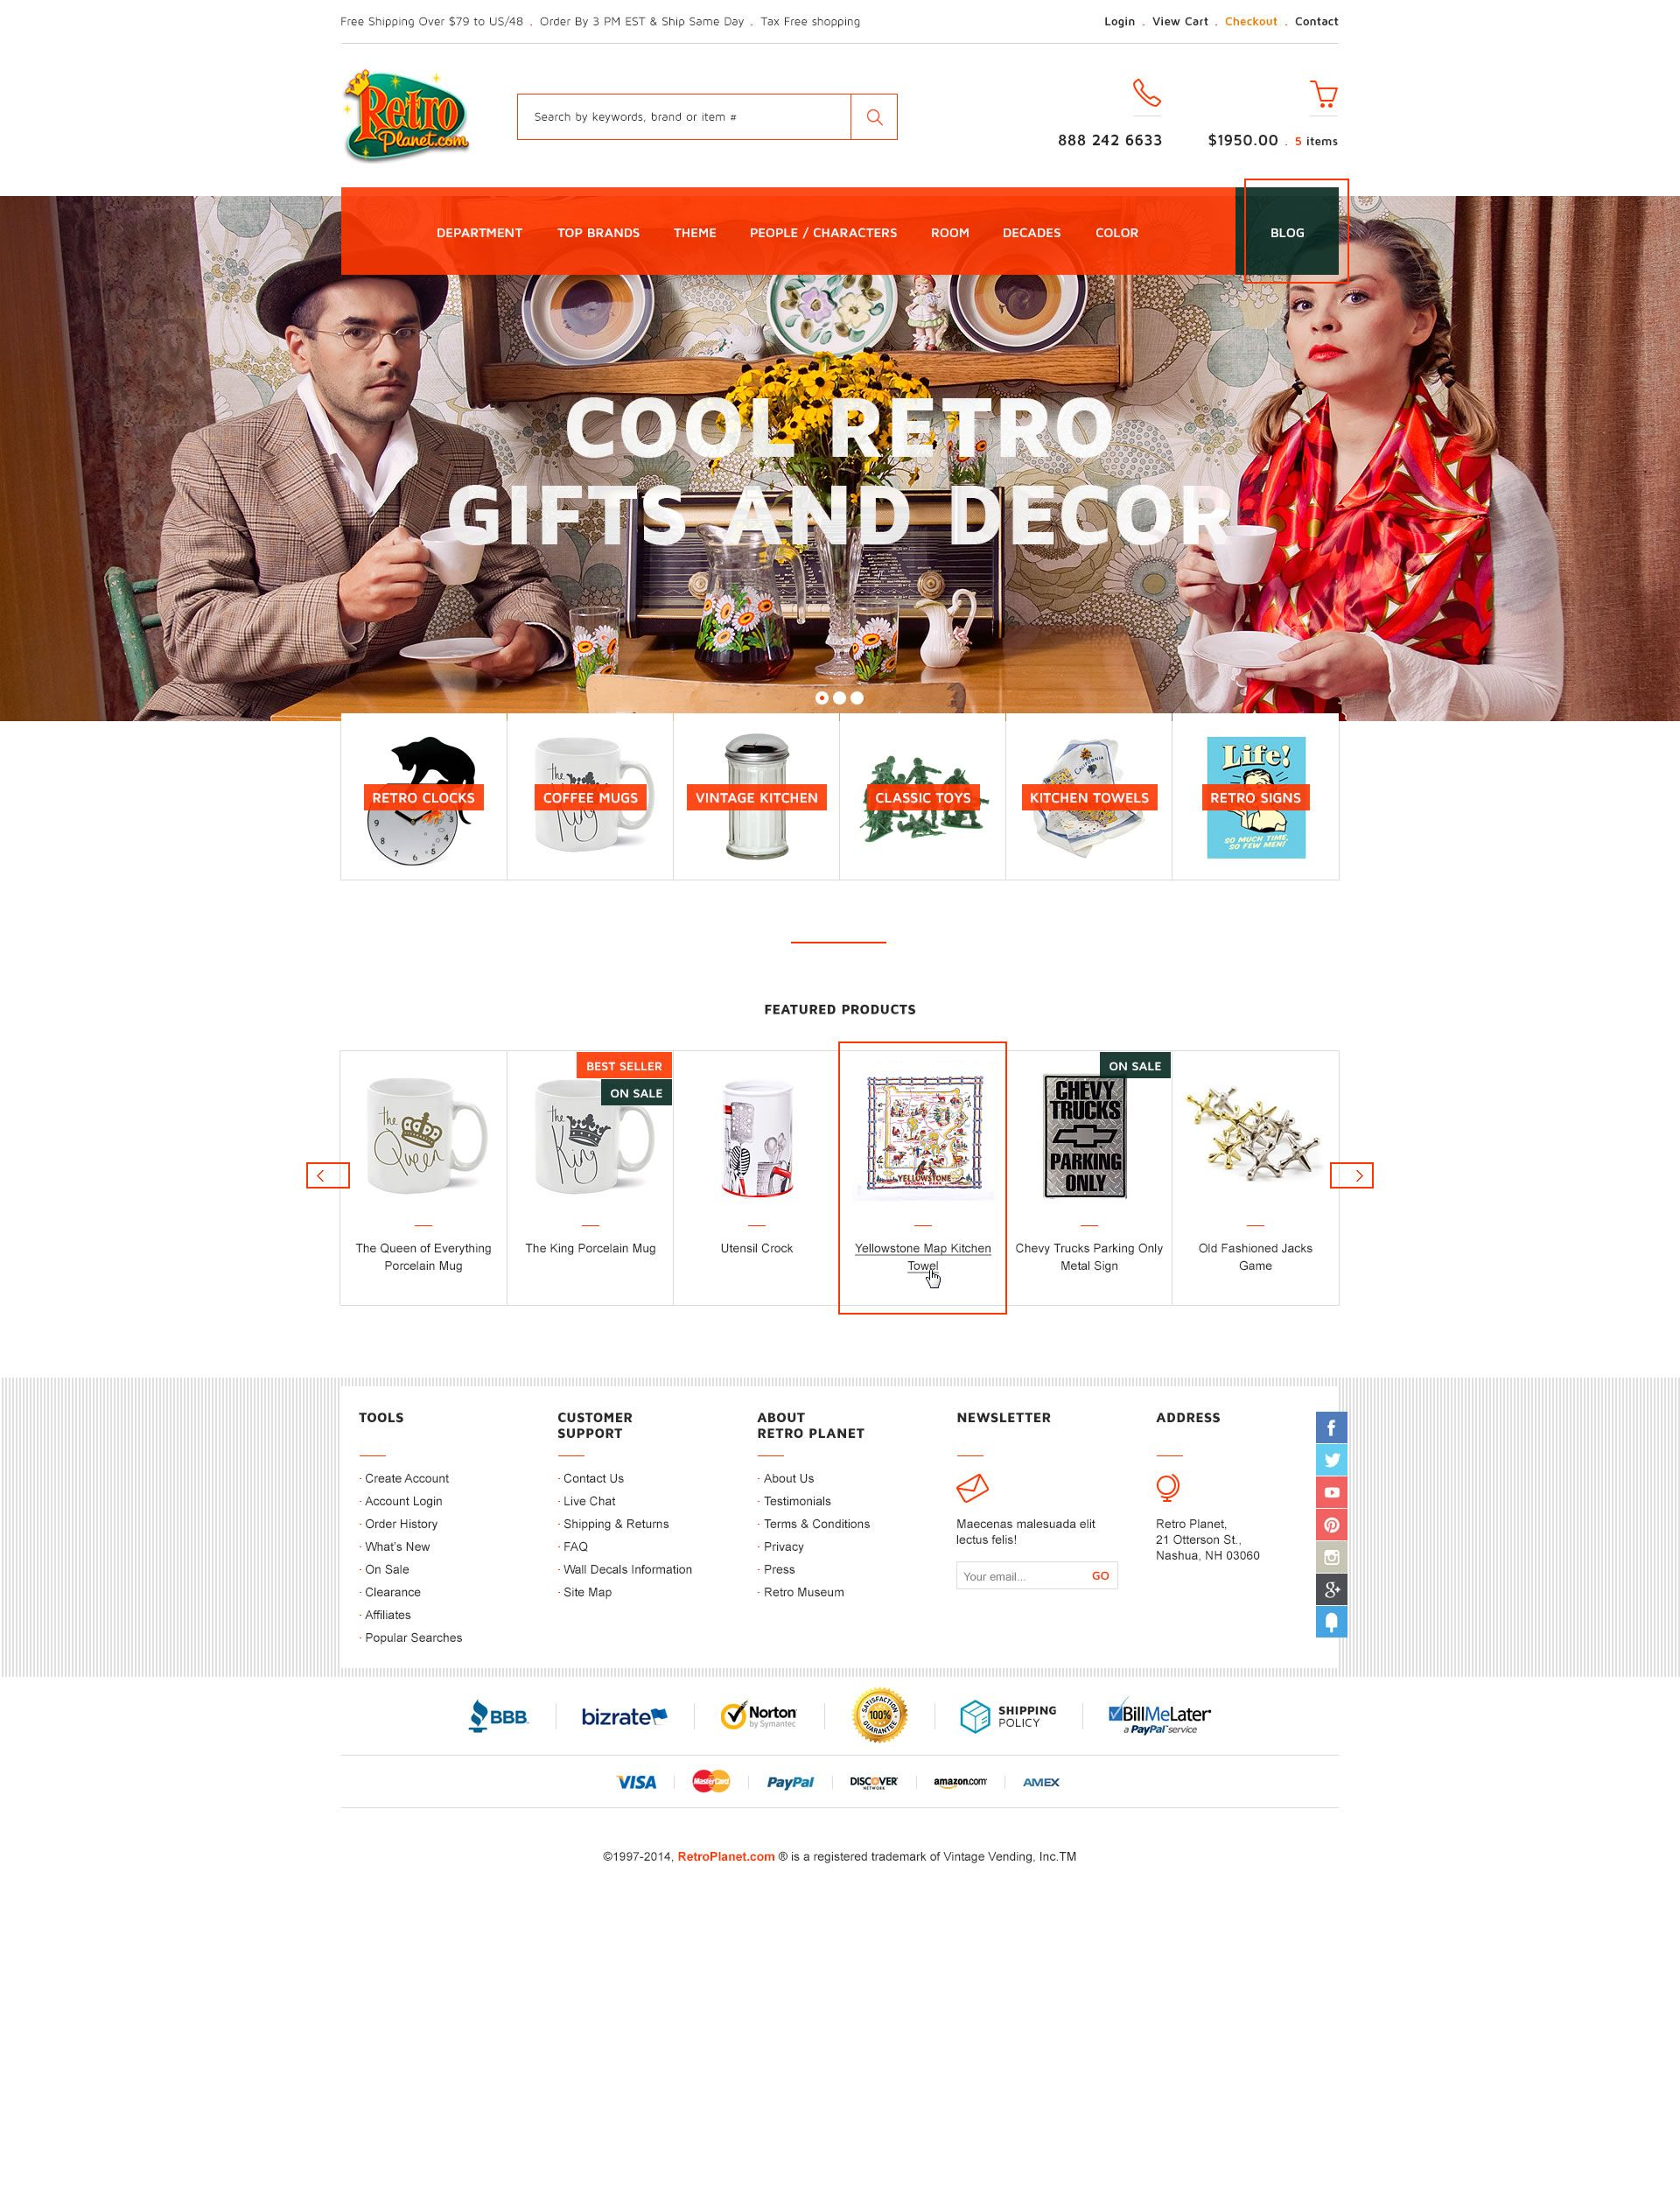 RetroPlanet.com - Home Page Mockup - Miva Merchant eCommerce Design / Customization